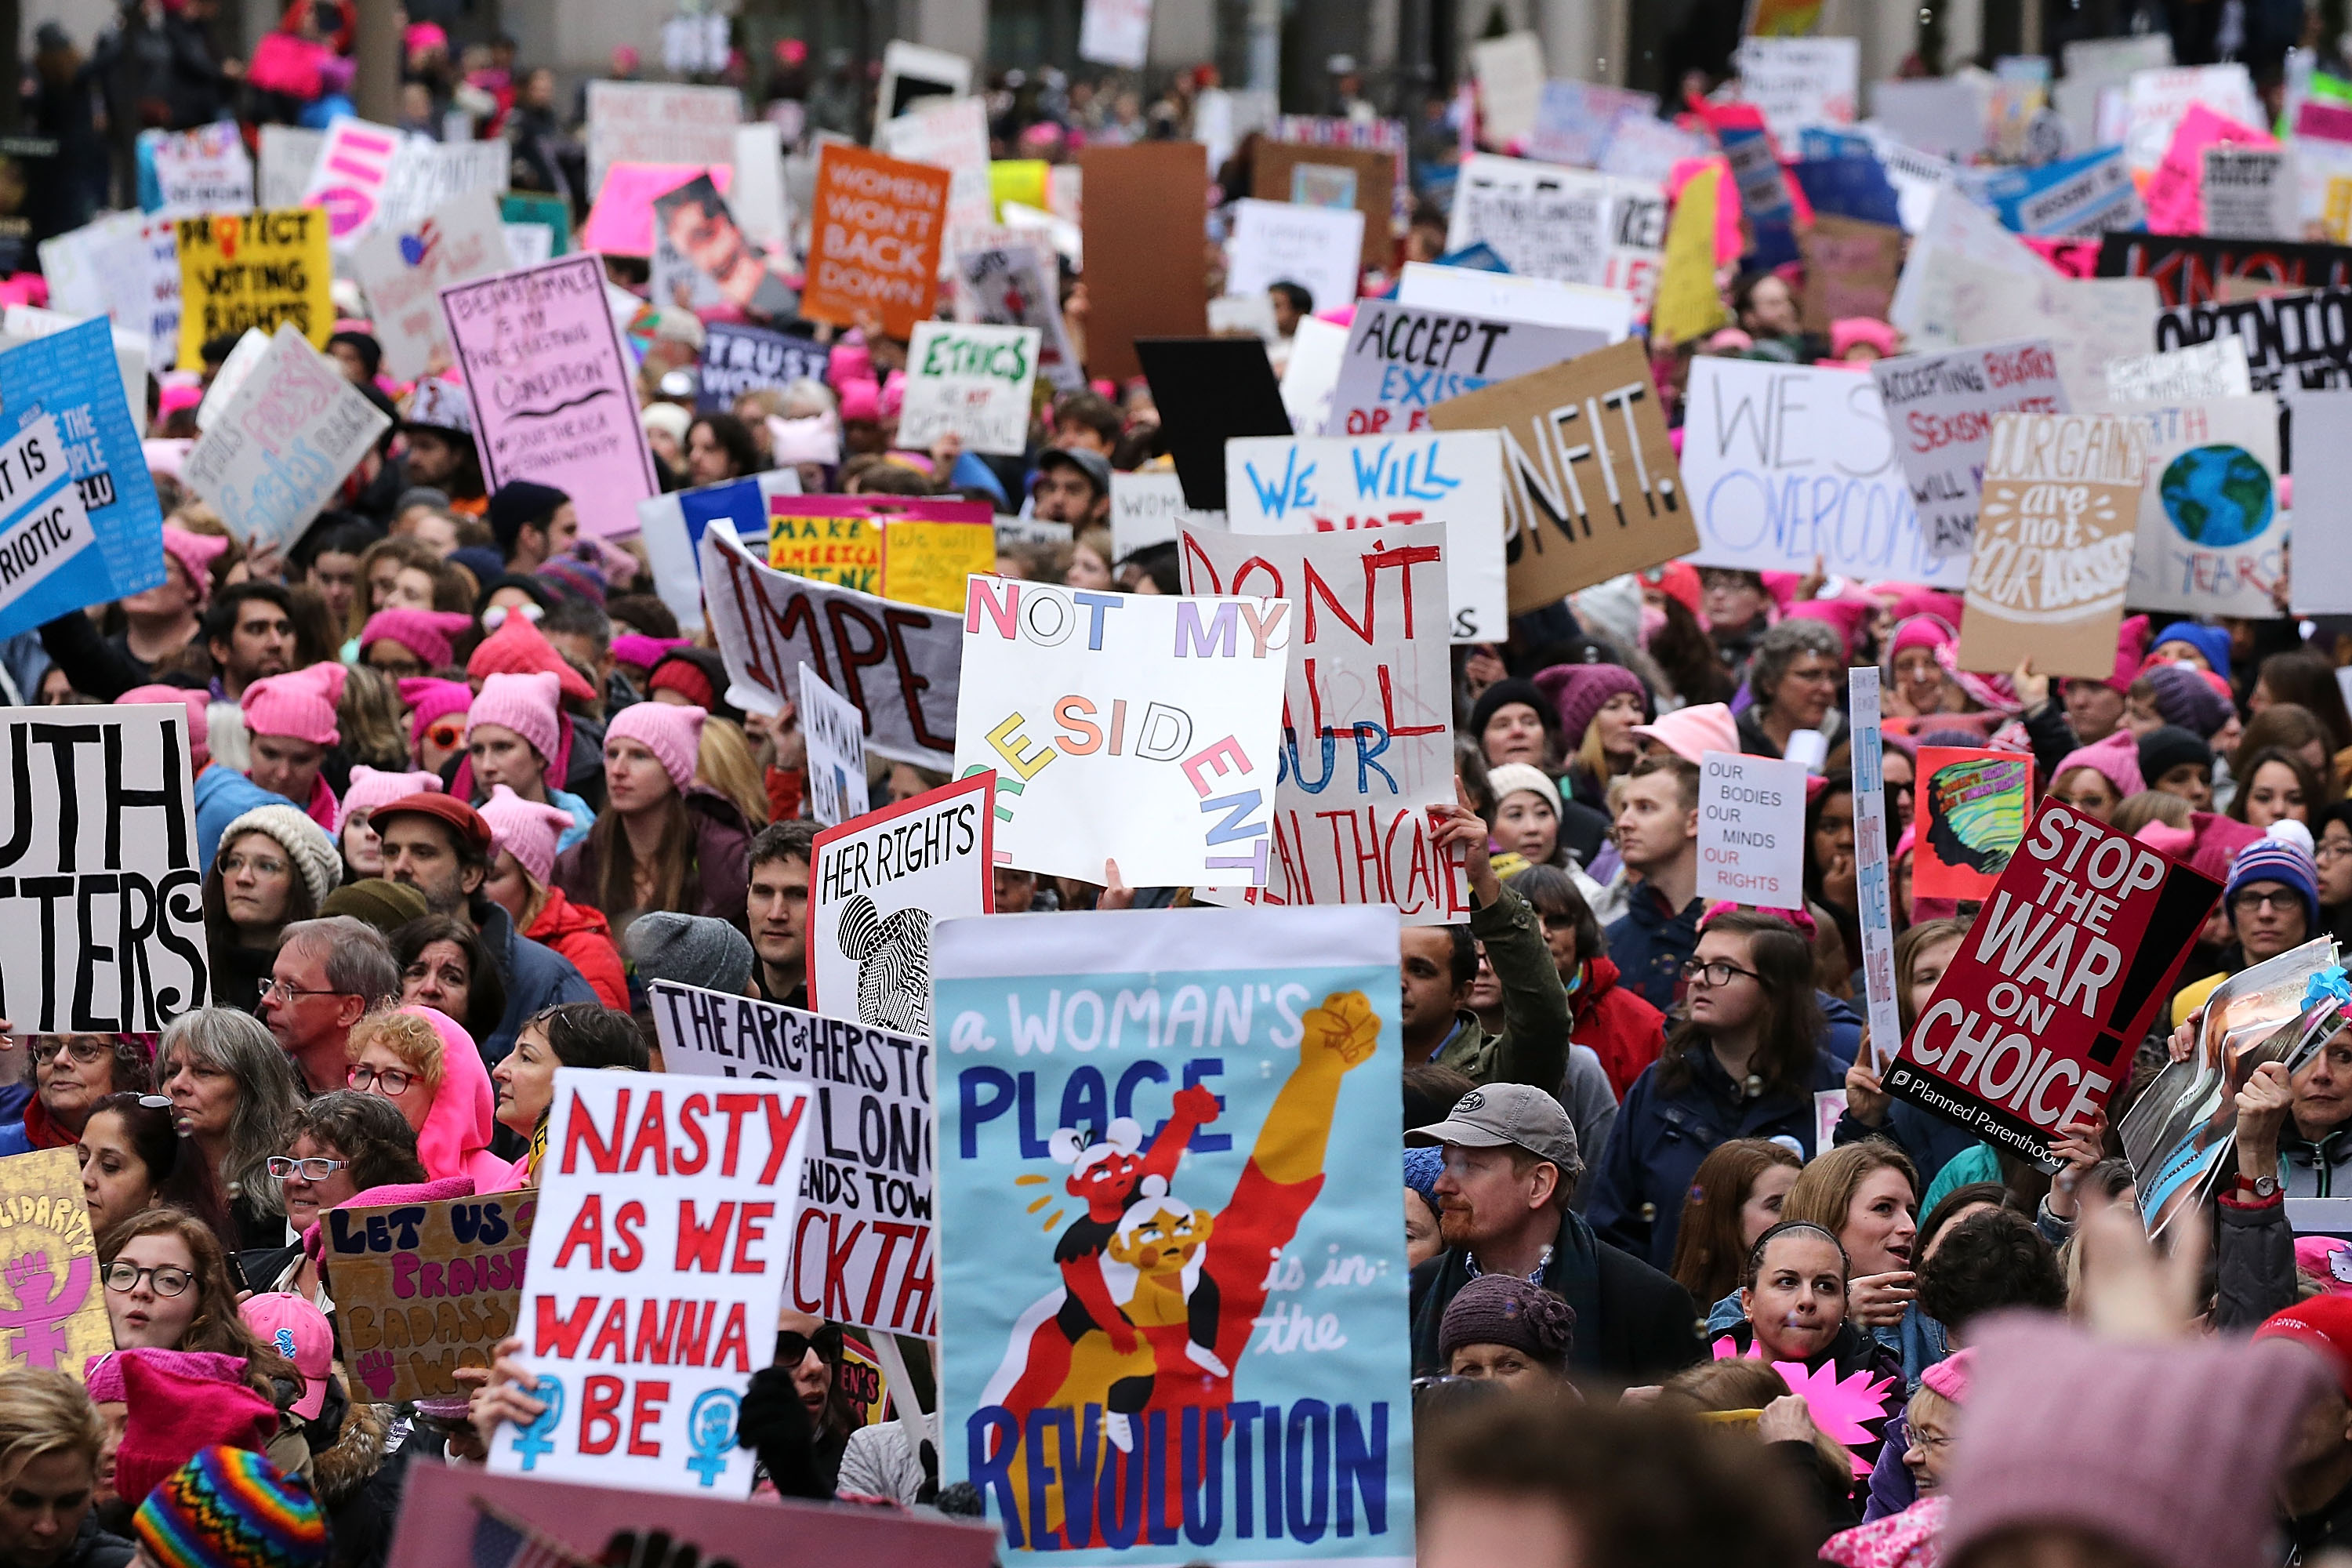 WASHINGTON, DC - JANUARY 21:  Protesters march on Pennsylvania Avenue during the Women's March on Washington on January 21, 2017 in Washington, DC.  (Photo by Paul Morigi/WireImage)